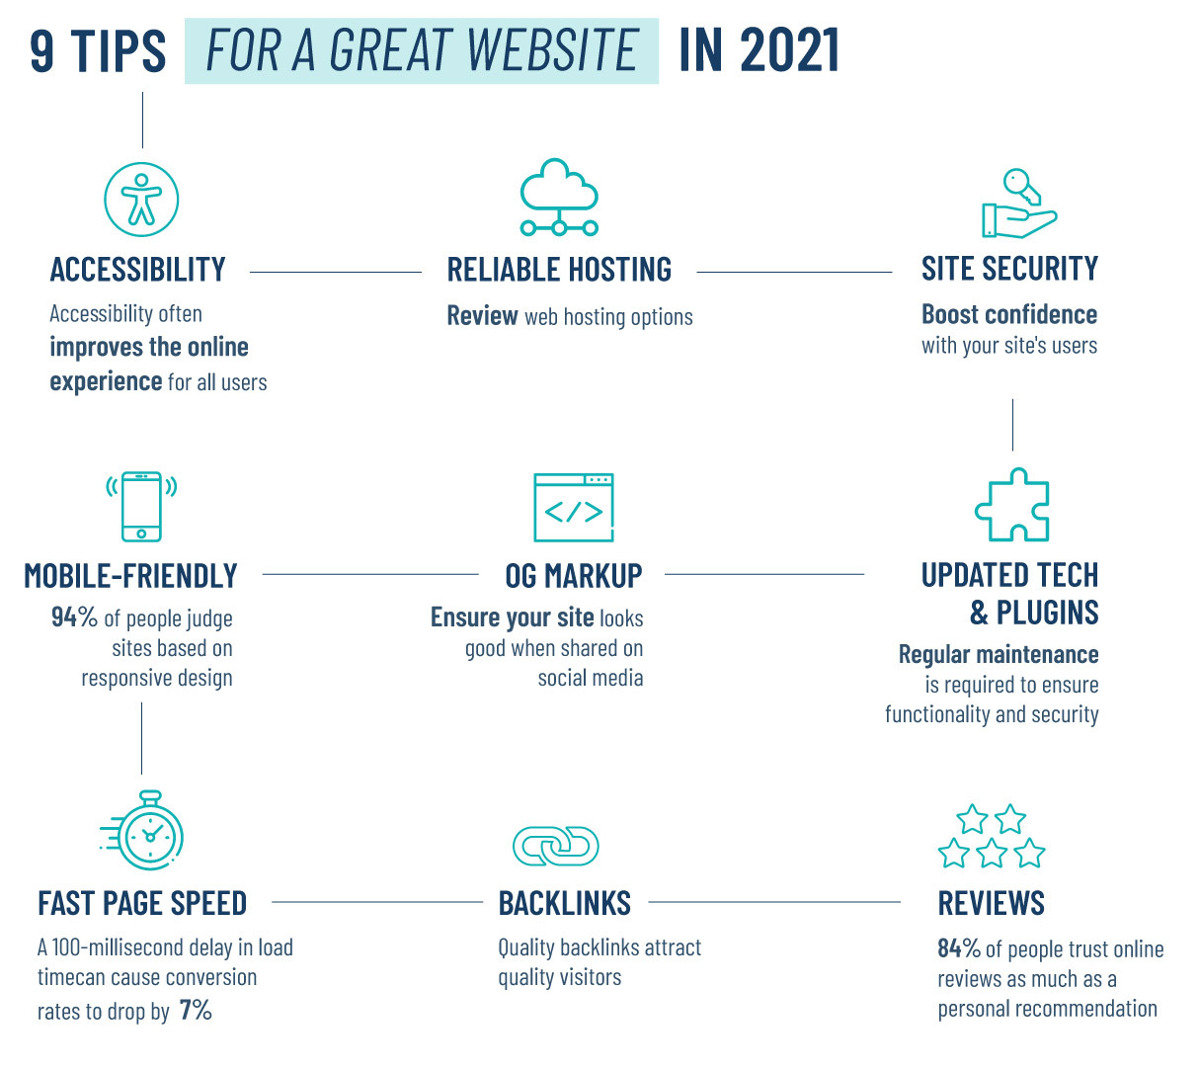 9 Tips for a Great Website in 2021 Infographic